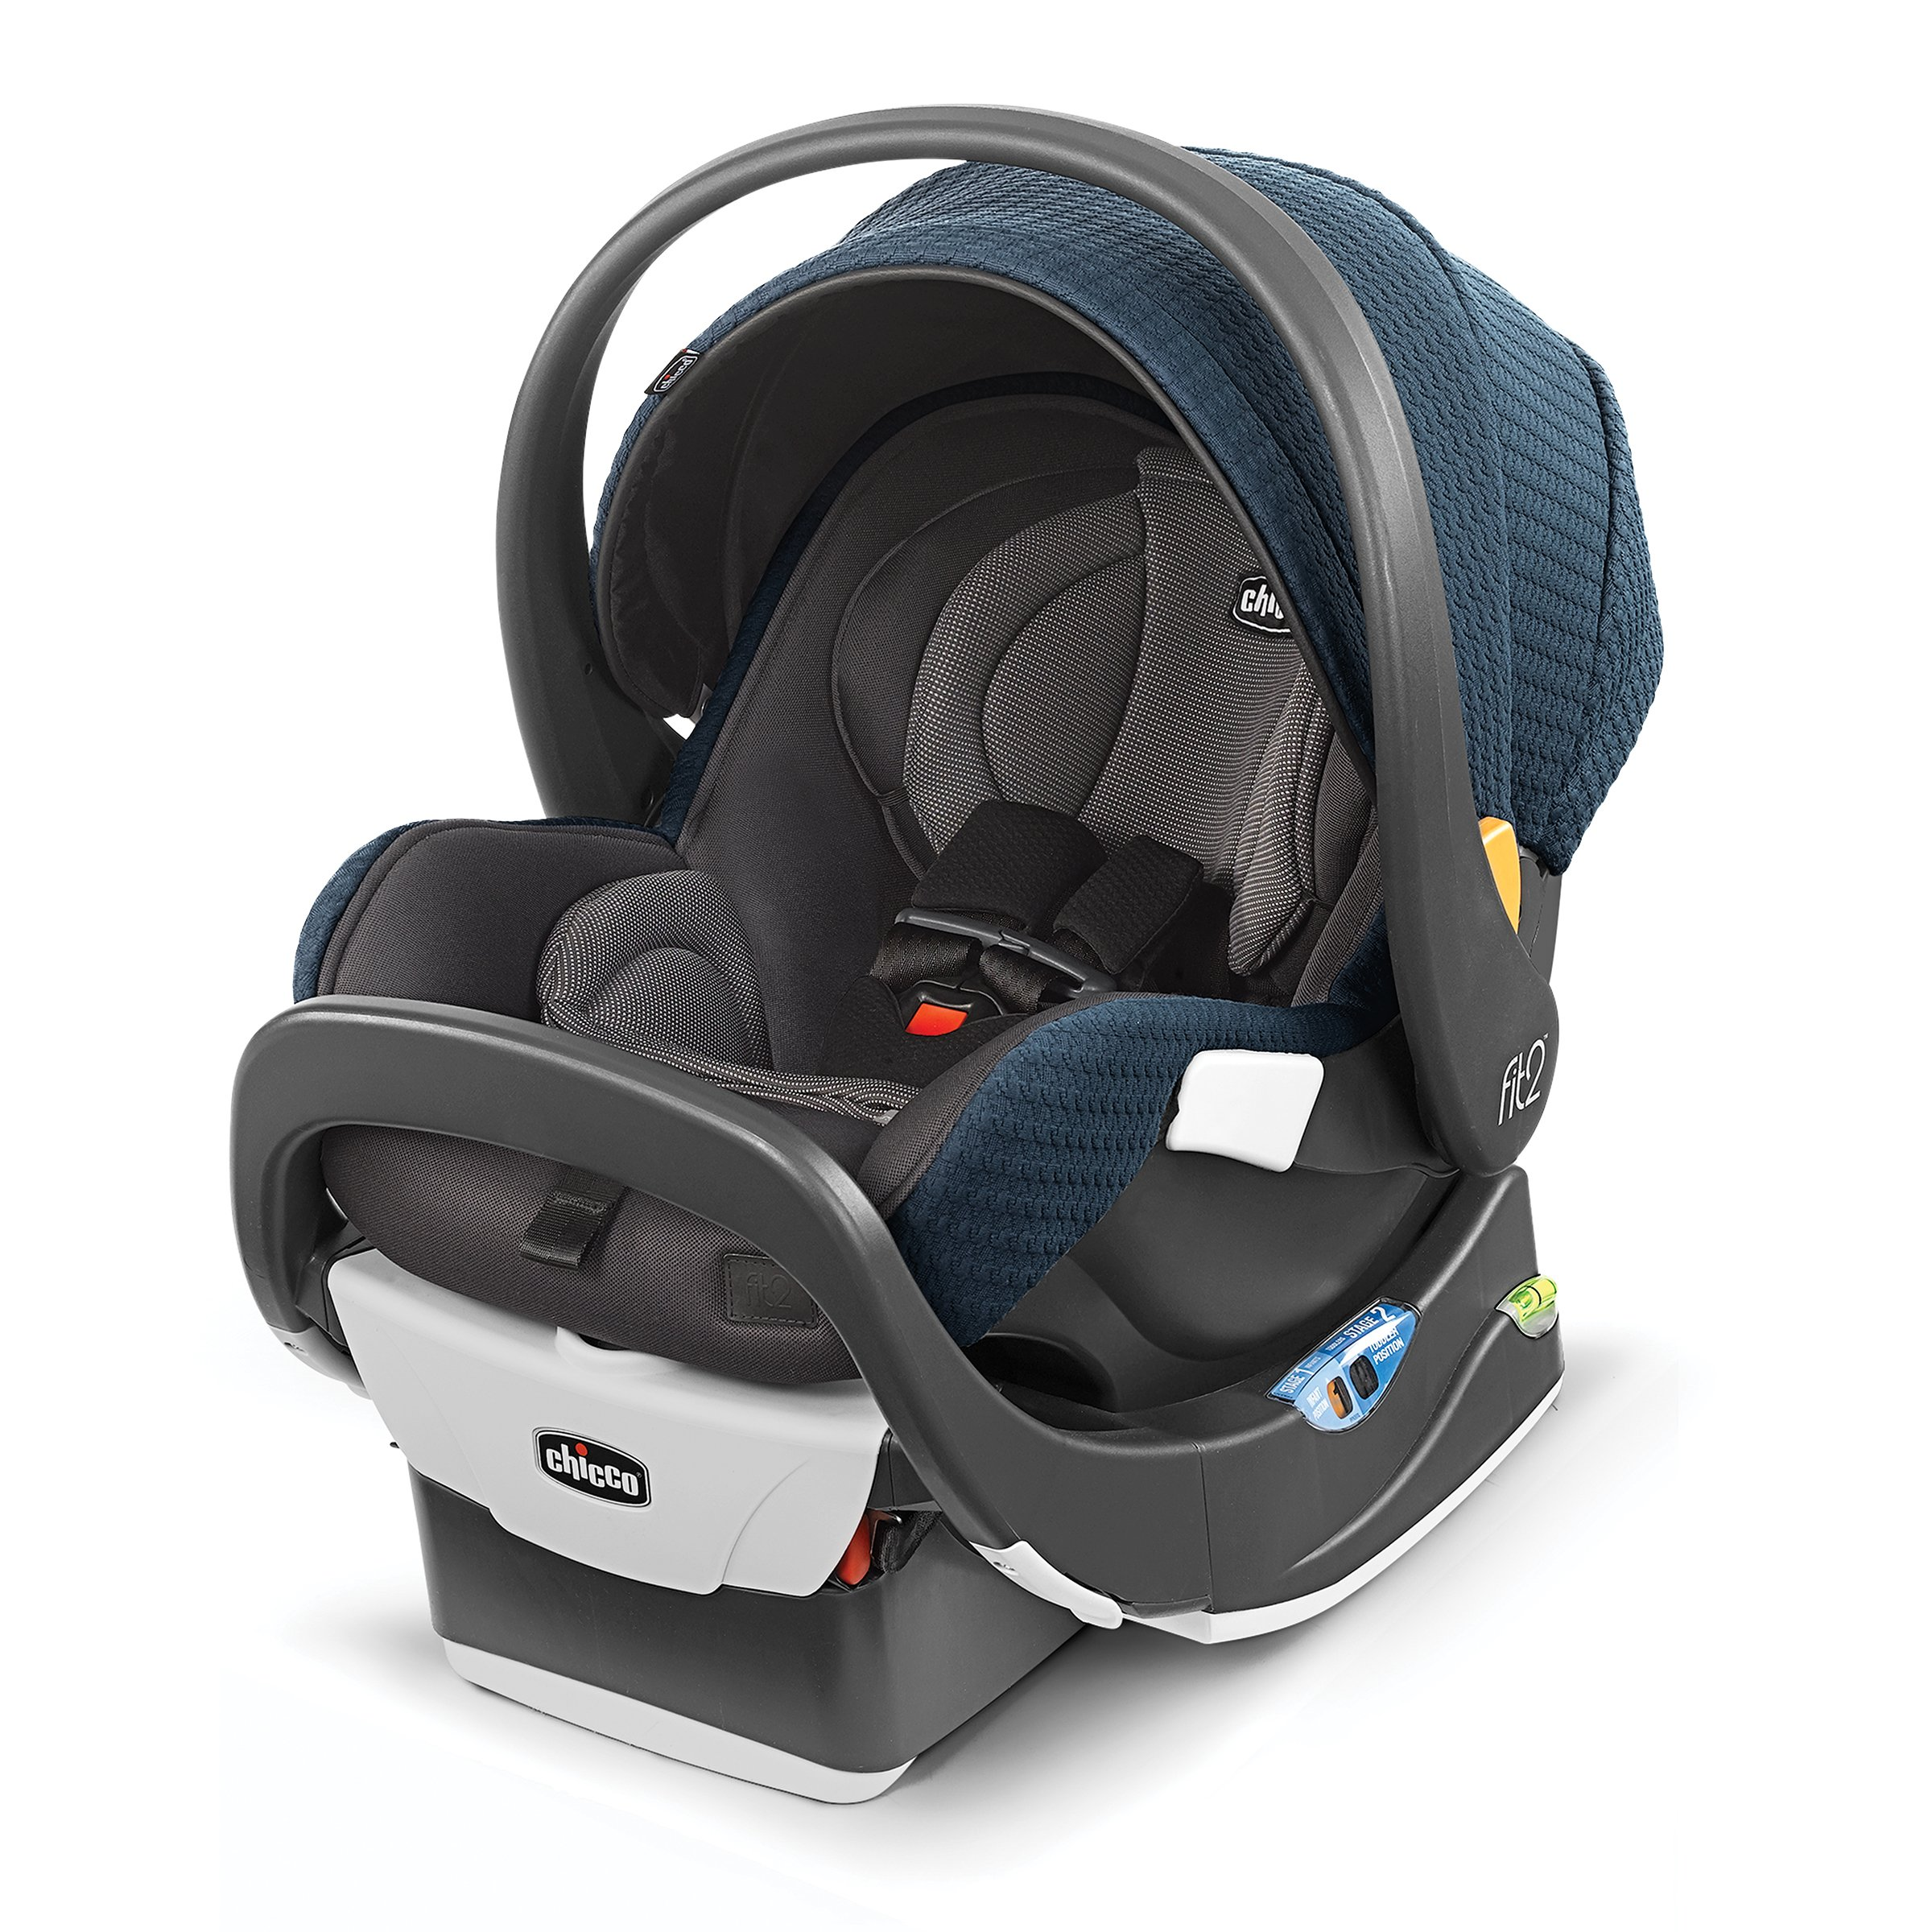 Amazon.com : Chicco Fit2 Infant & Toddler Car Seat Base : Baby